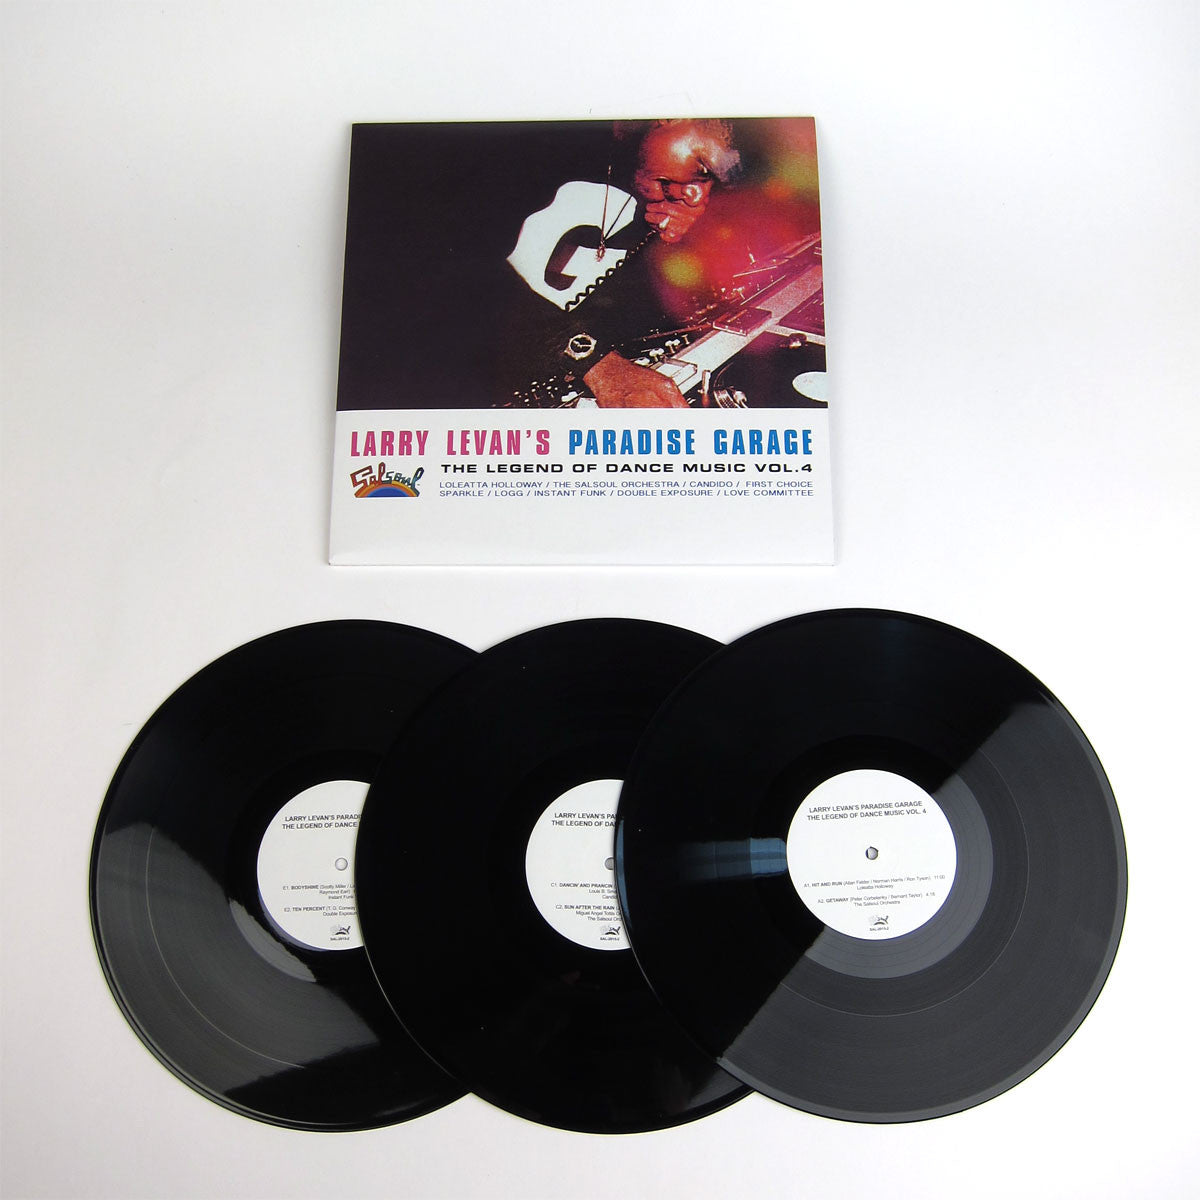 Larry Levan: Larry Levan's Paradise Garage - The Legend Of Dance Music Vol.4 Vinyl 3LP